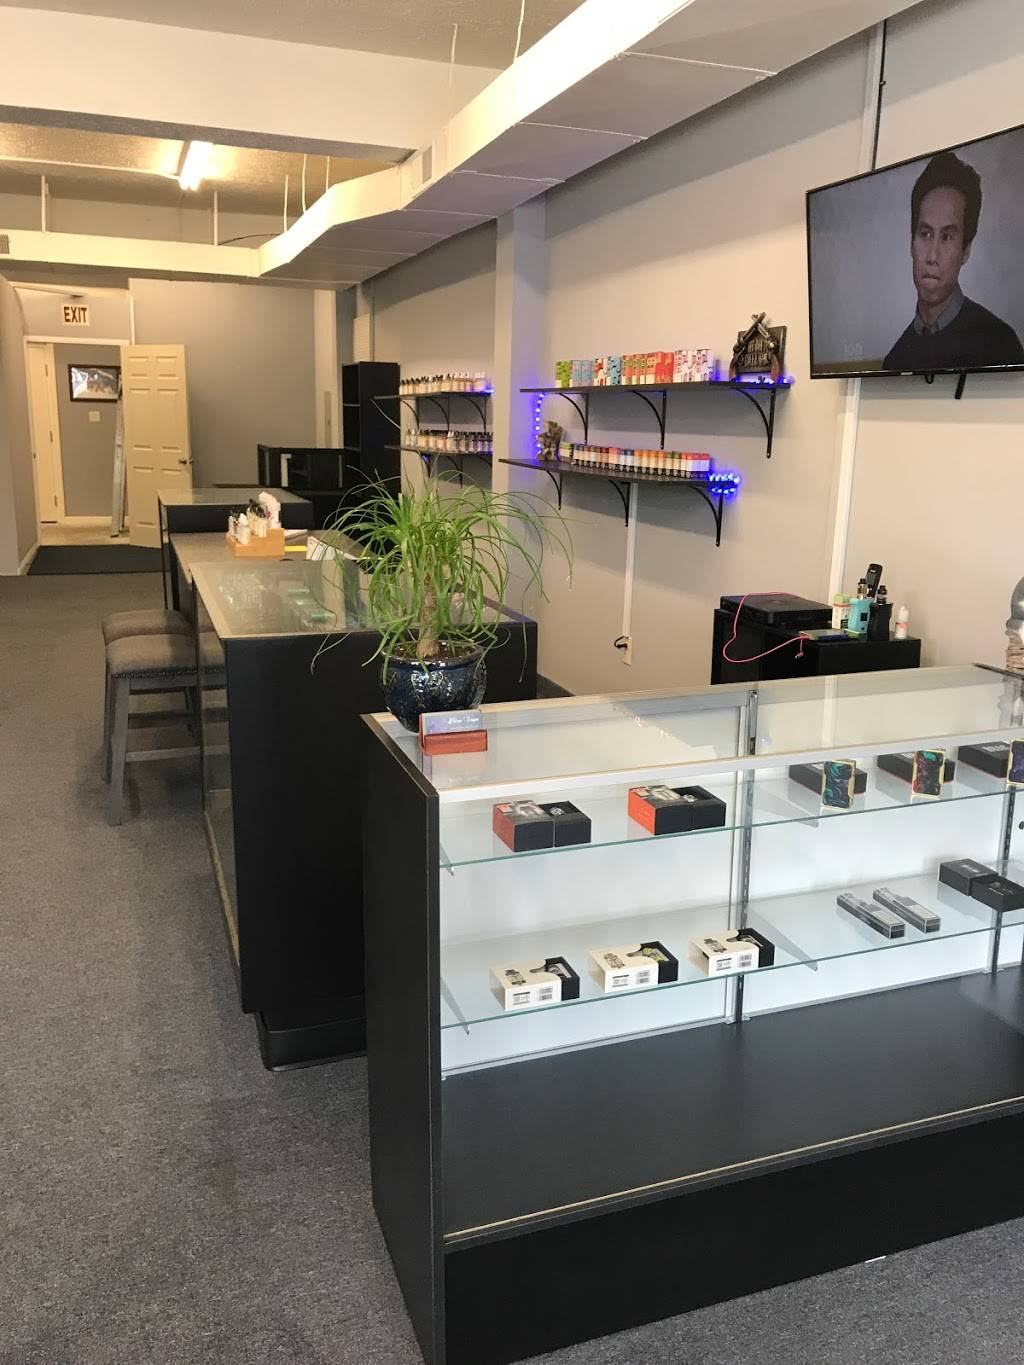 Ultra Vape - store  | Photo 2 of 4 | Address: 36081 Lakeshore Blvd, Eastlake, OH 44095, USA | Phone: (440) 525-5503